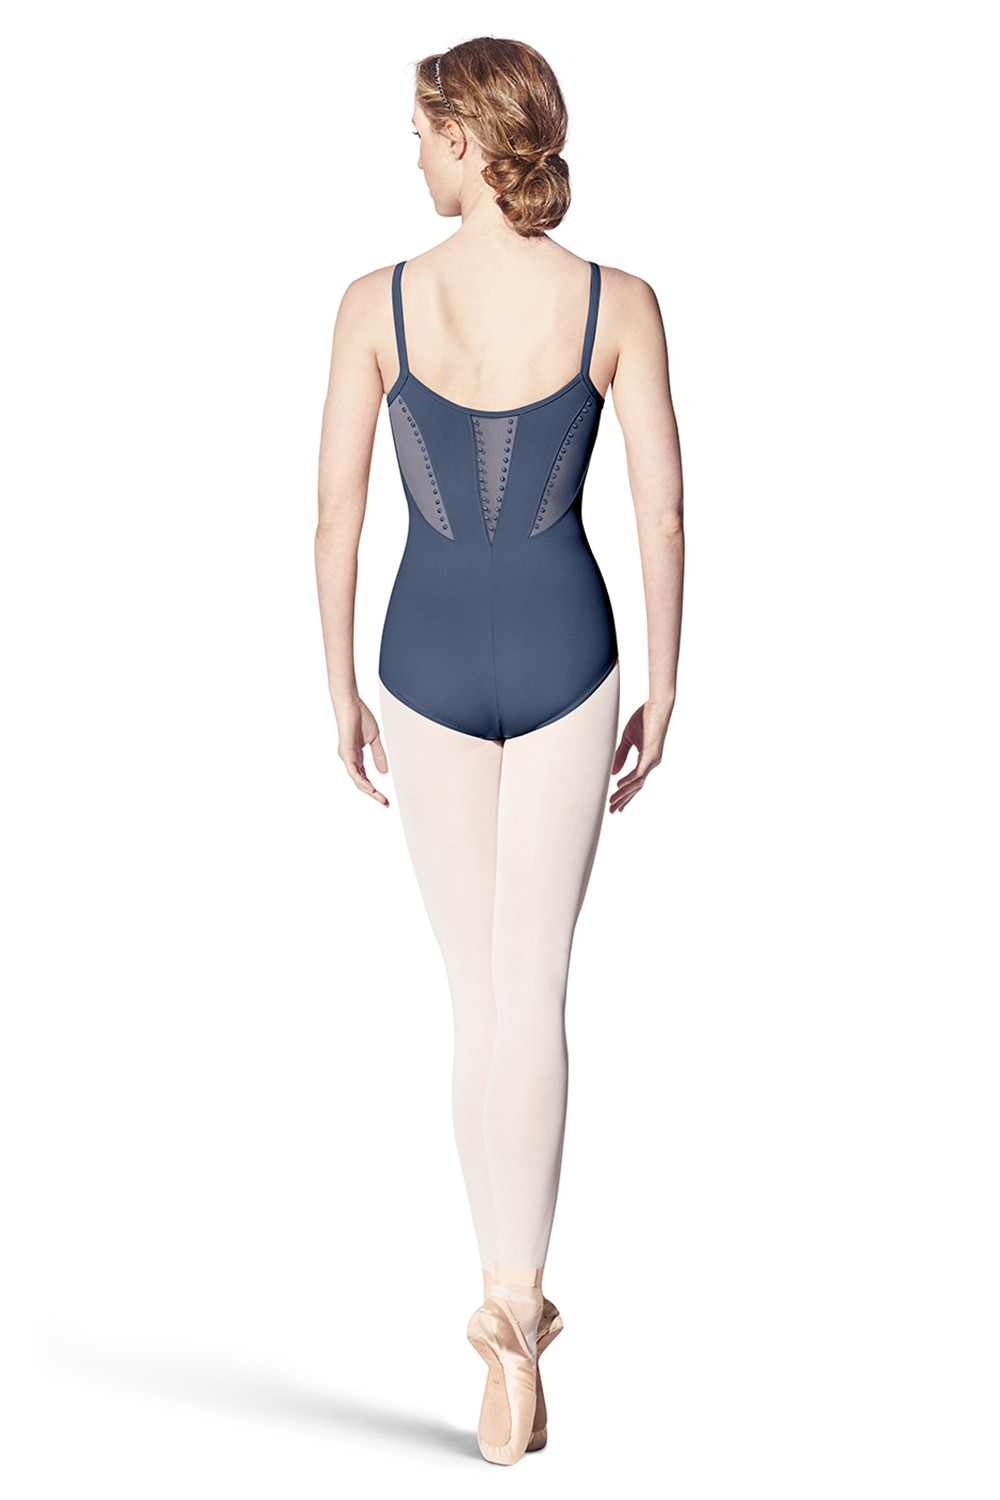 Adalie - Tween Tween Dance Leotards